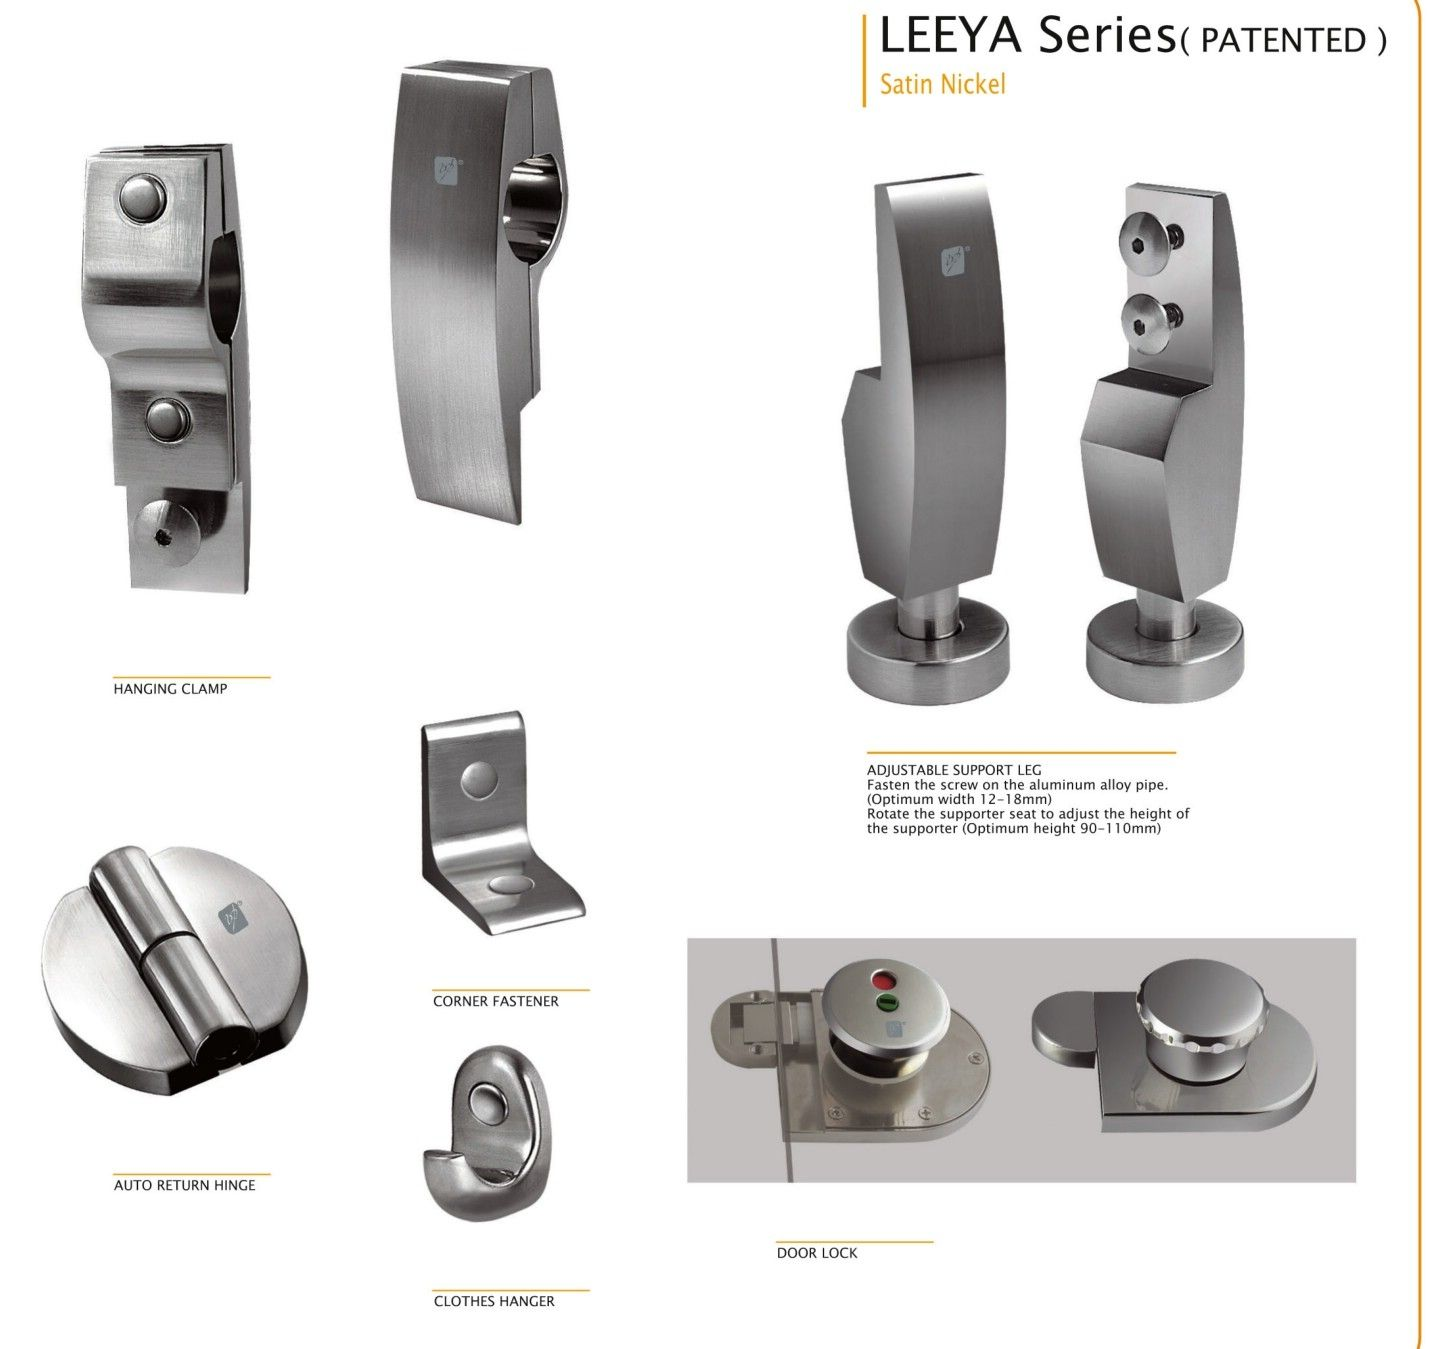 Bathroom Partition Accessories hpl toilet partition accessories hardware leeya series, view